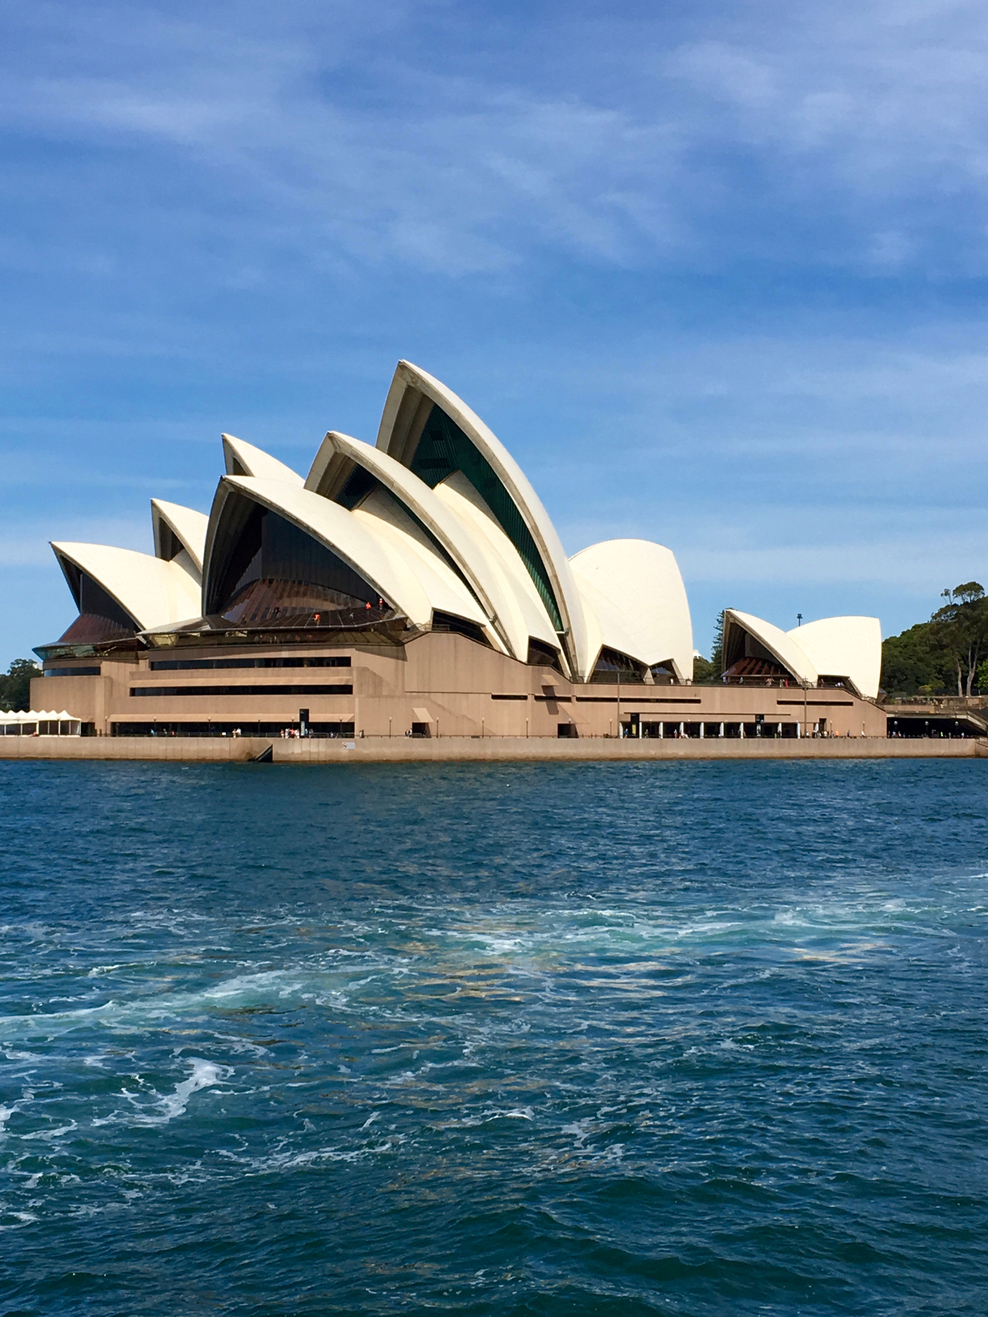 Sydney Shore Excursions - Australian Cruise Excursions ...